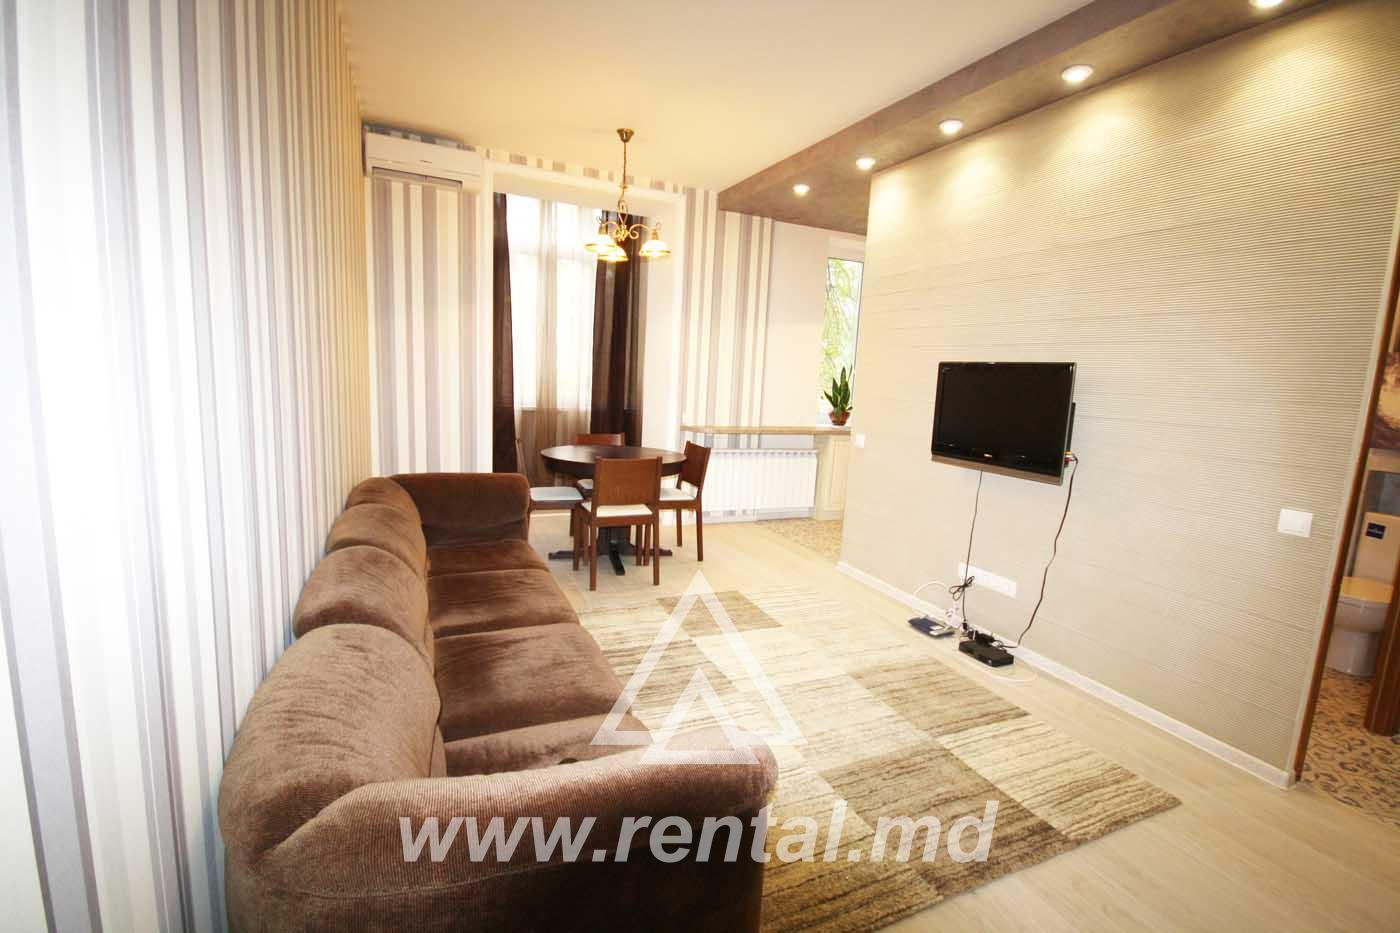 Modern apartment for rent in Chisinau downtown